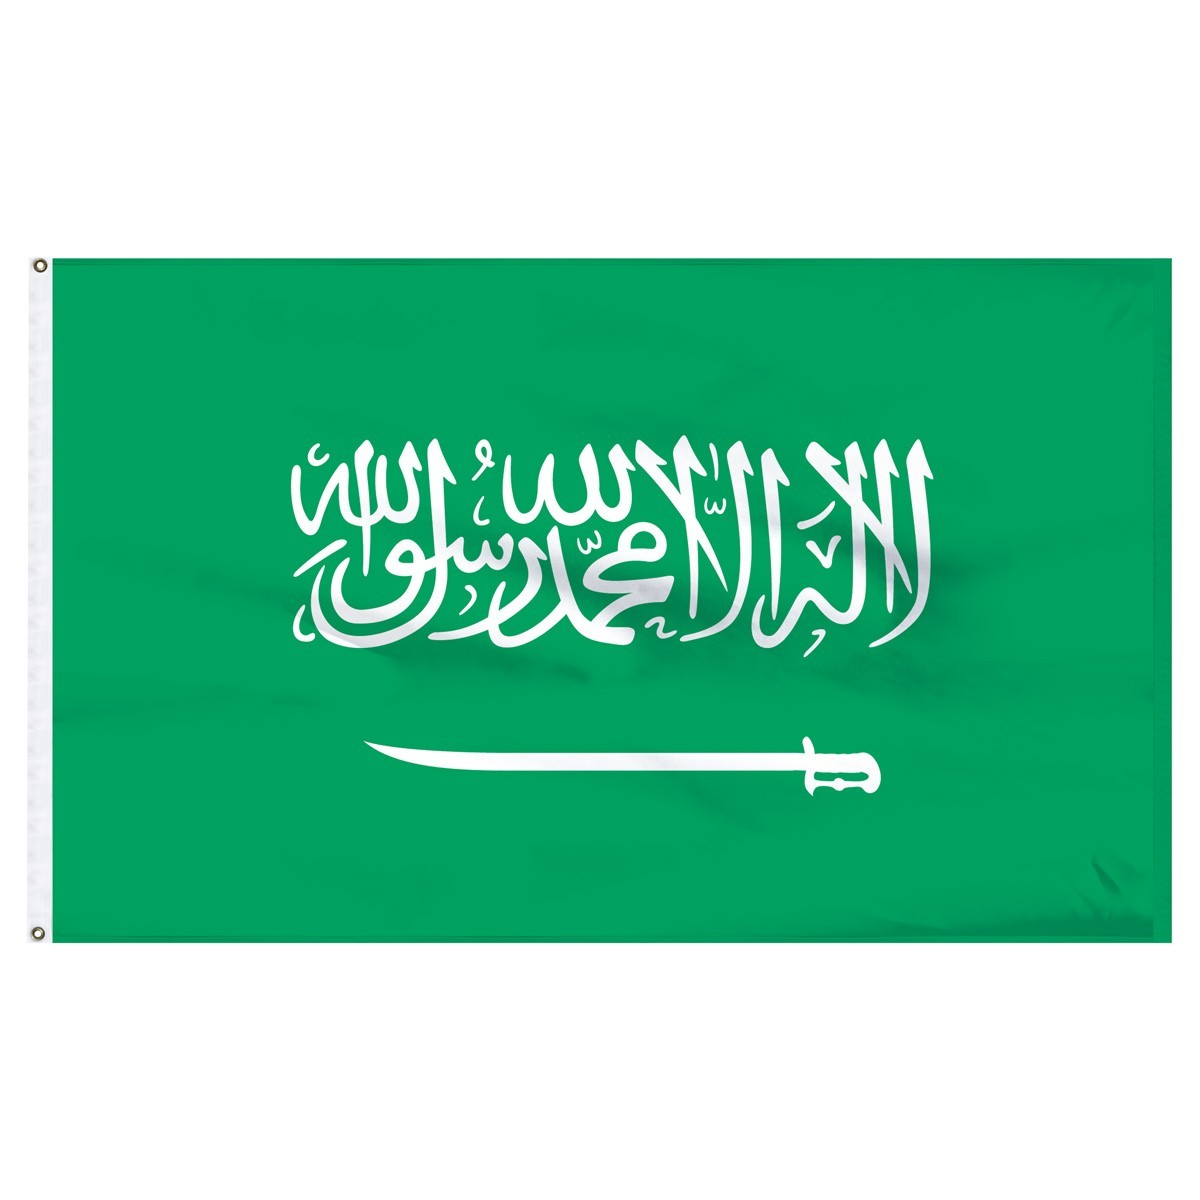 Saudi Arabia 4' x 6' Outdoor Nylon Flag